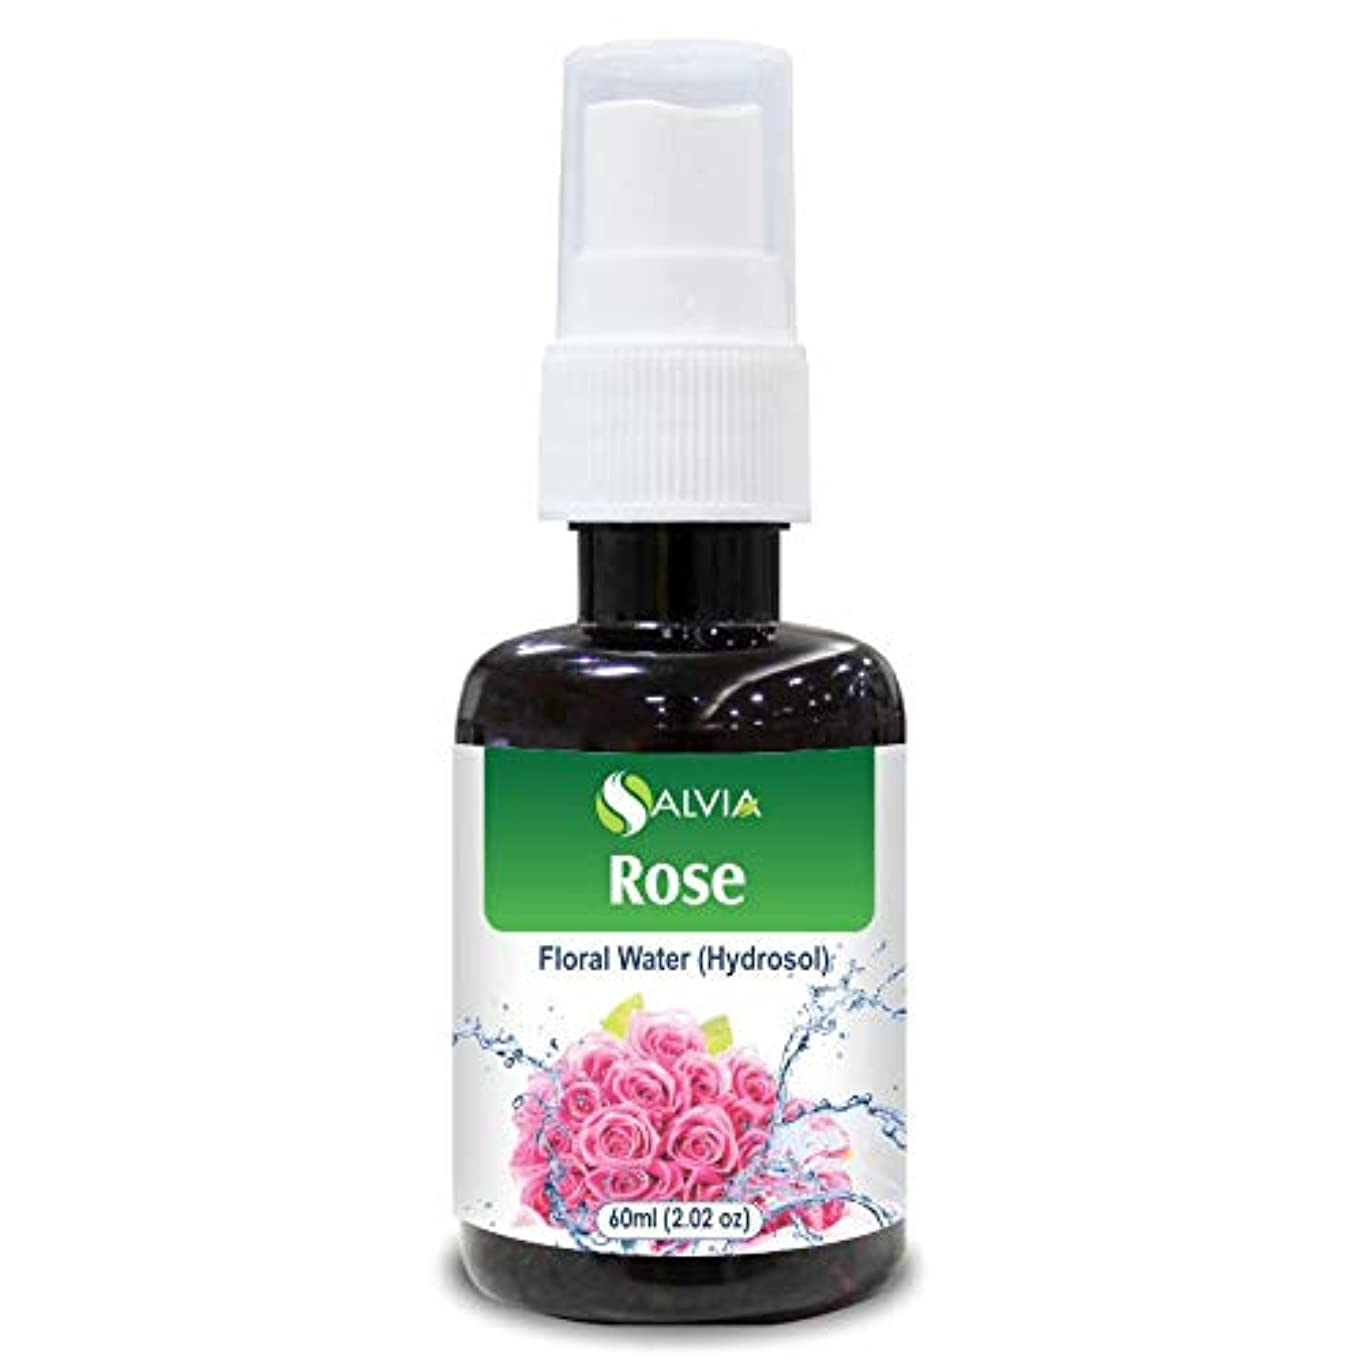 Rose Floral Water 60ml (Hydrosol) 100% Pure And Natural